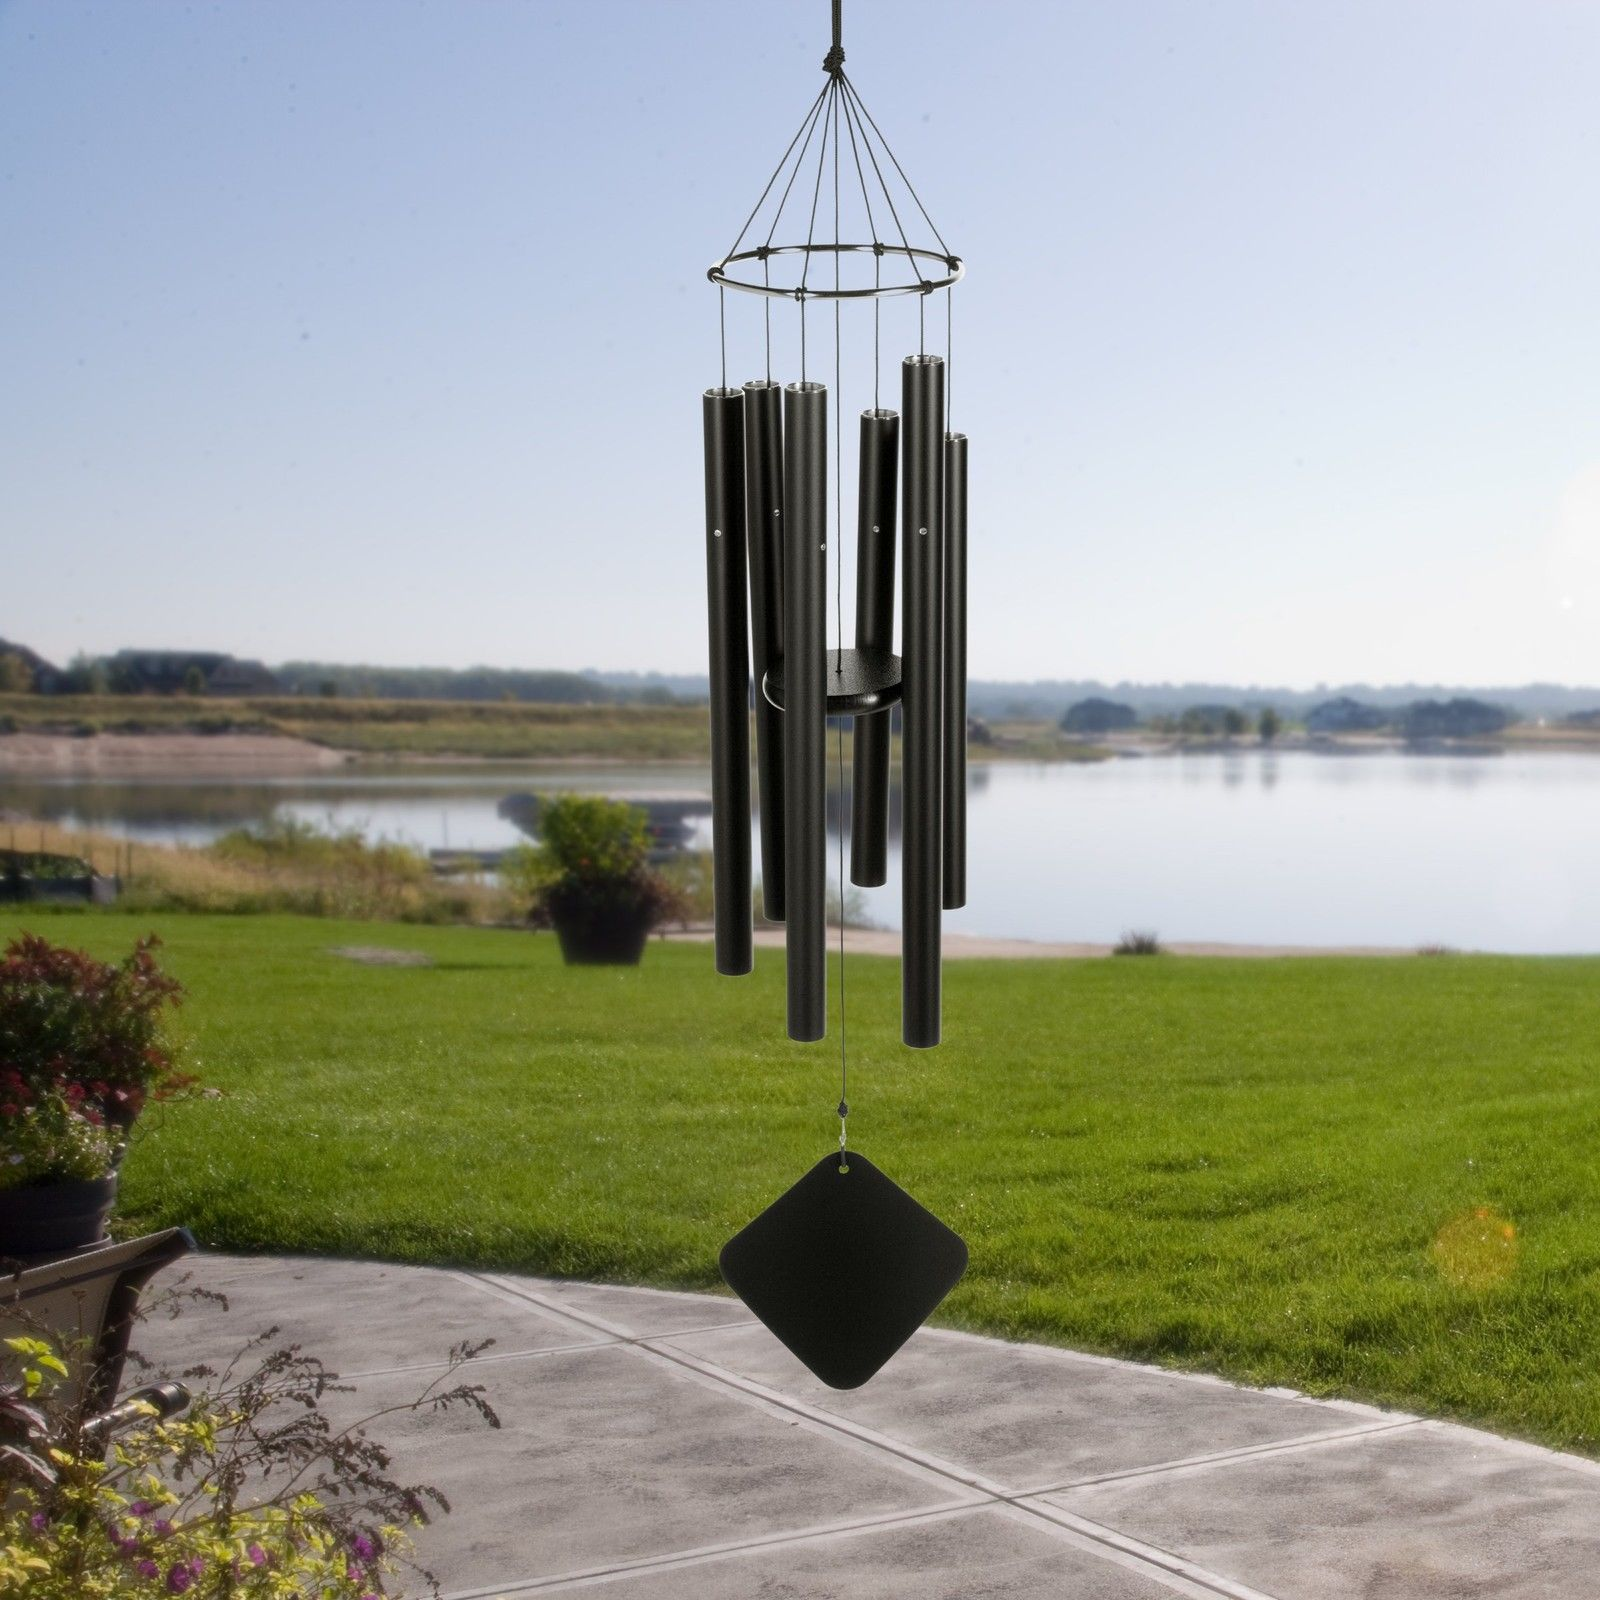 Music of the Spheres - Austin, TX.  Tempered aluminum chimes treated to avoid rust & corrosion, designed to last in a variety of climate conditions. Available in a number of specific scales, including Mongolian, Hawaiian, Pentatonic, Nashville, Japanese, & many more.